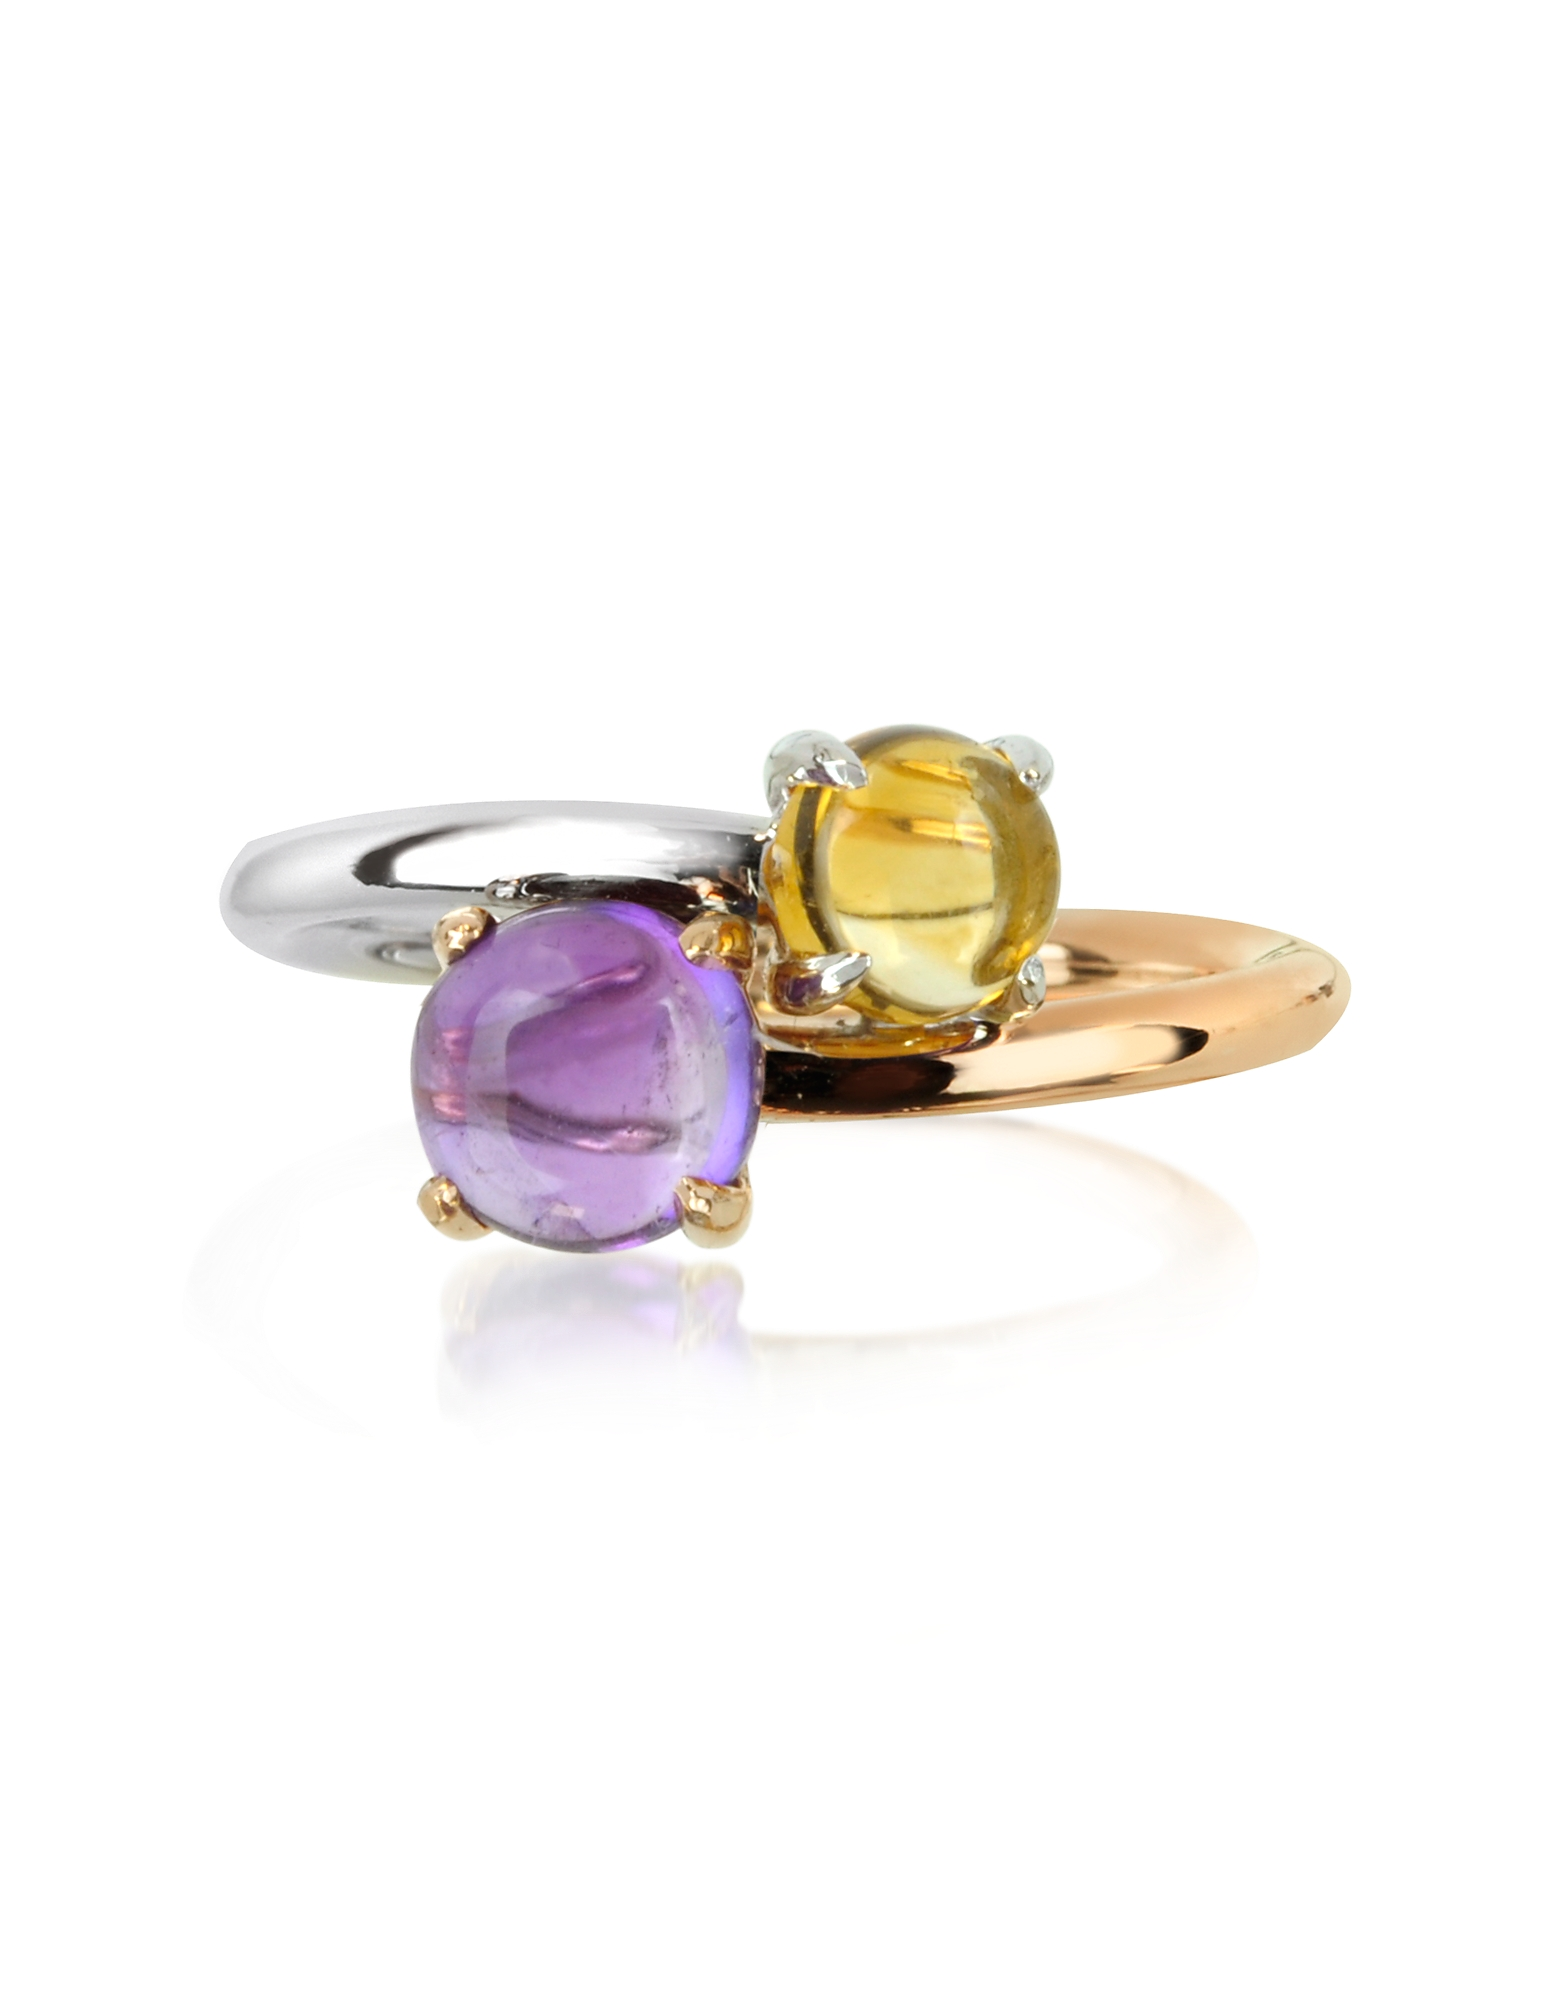 Mia & Beverly Rings, Amethyst and Citrine Quartz 18K Rose & White Gold